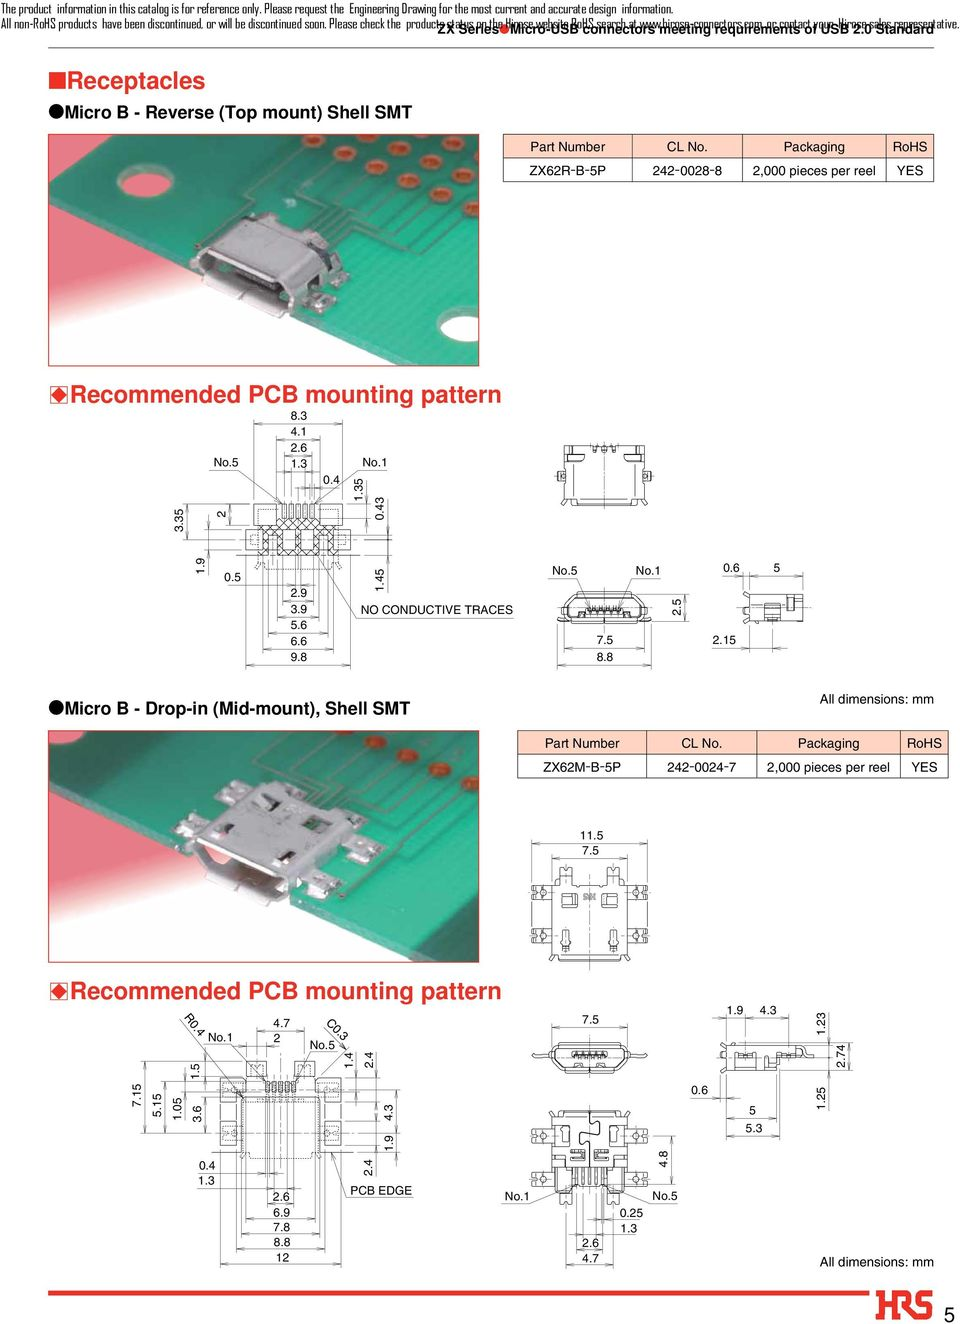 Receptacles Micro B - Reverse (Top mount) Shell SMT ZX62R-B-5P 242-002- 2,000 pieces per reel YES BRecommended PCB mounting pattern 3.35 2.3 4.1 0.4 5 0.43 11.5 7.5 R0.4 3.6 4.3 1.9 1.9 0.5 2.9 3.